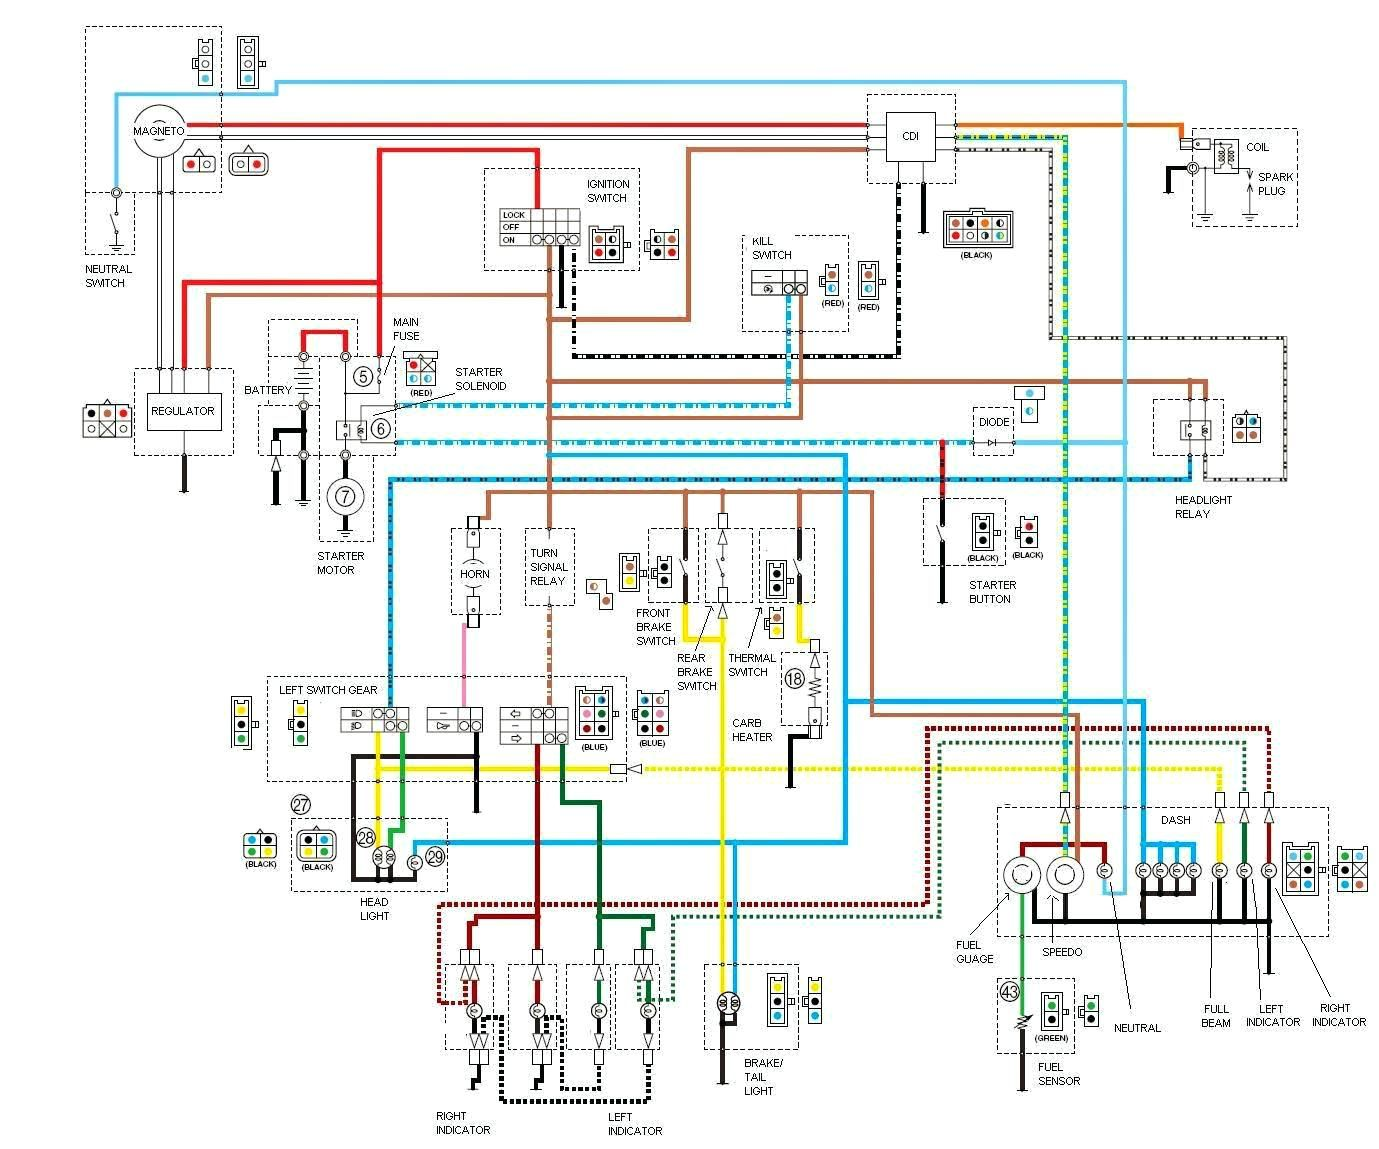 guitar live sound setup diagram fantastic band pa system wiring schematic contemporary comfortable ideas electrical archived on wiring diagram category with  [ 1379 x 1149 Pixel ]